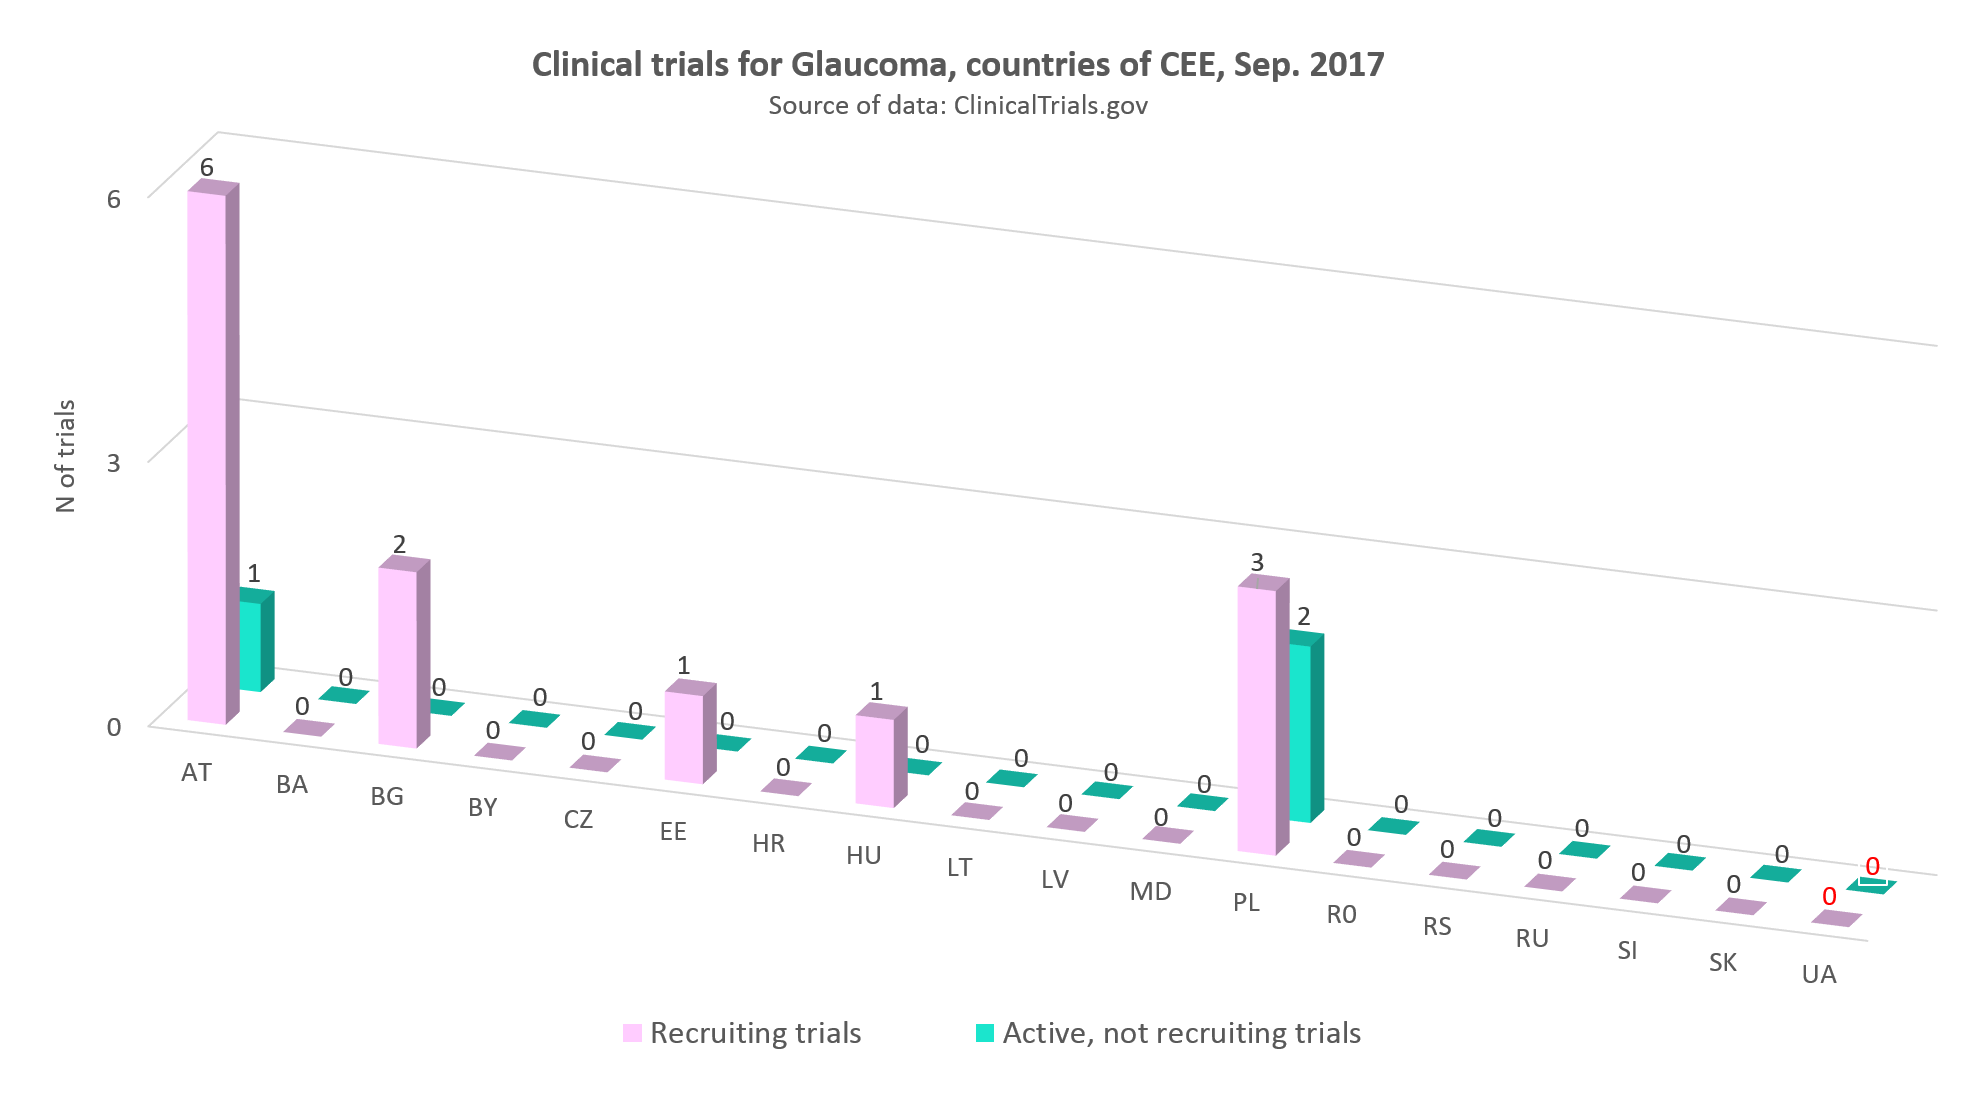 Clinical trials for glaucoma in the countries of CEE, September 2017